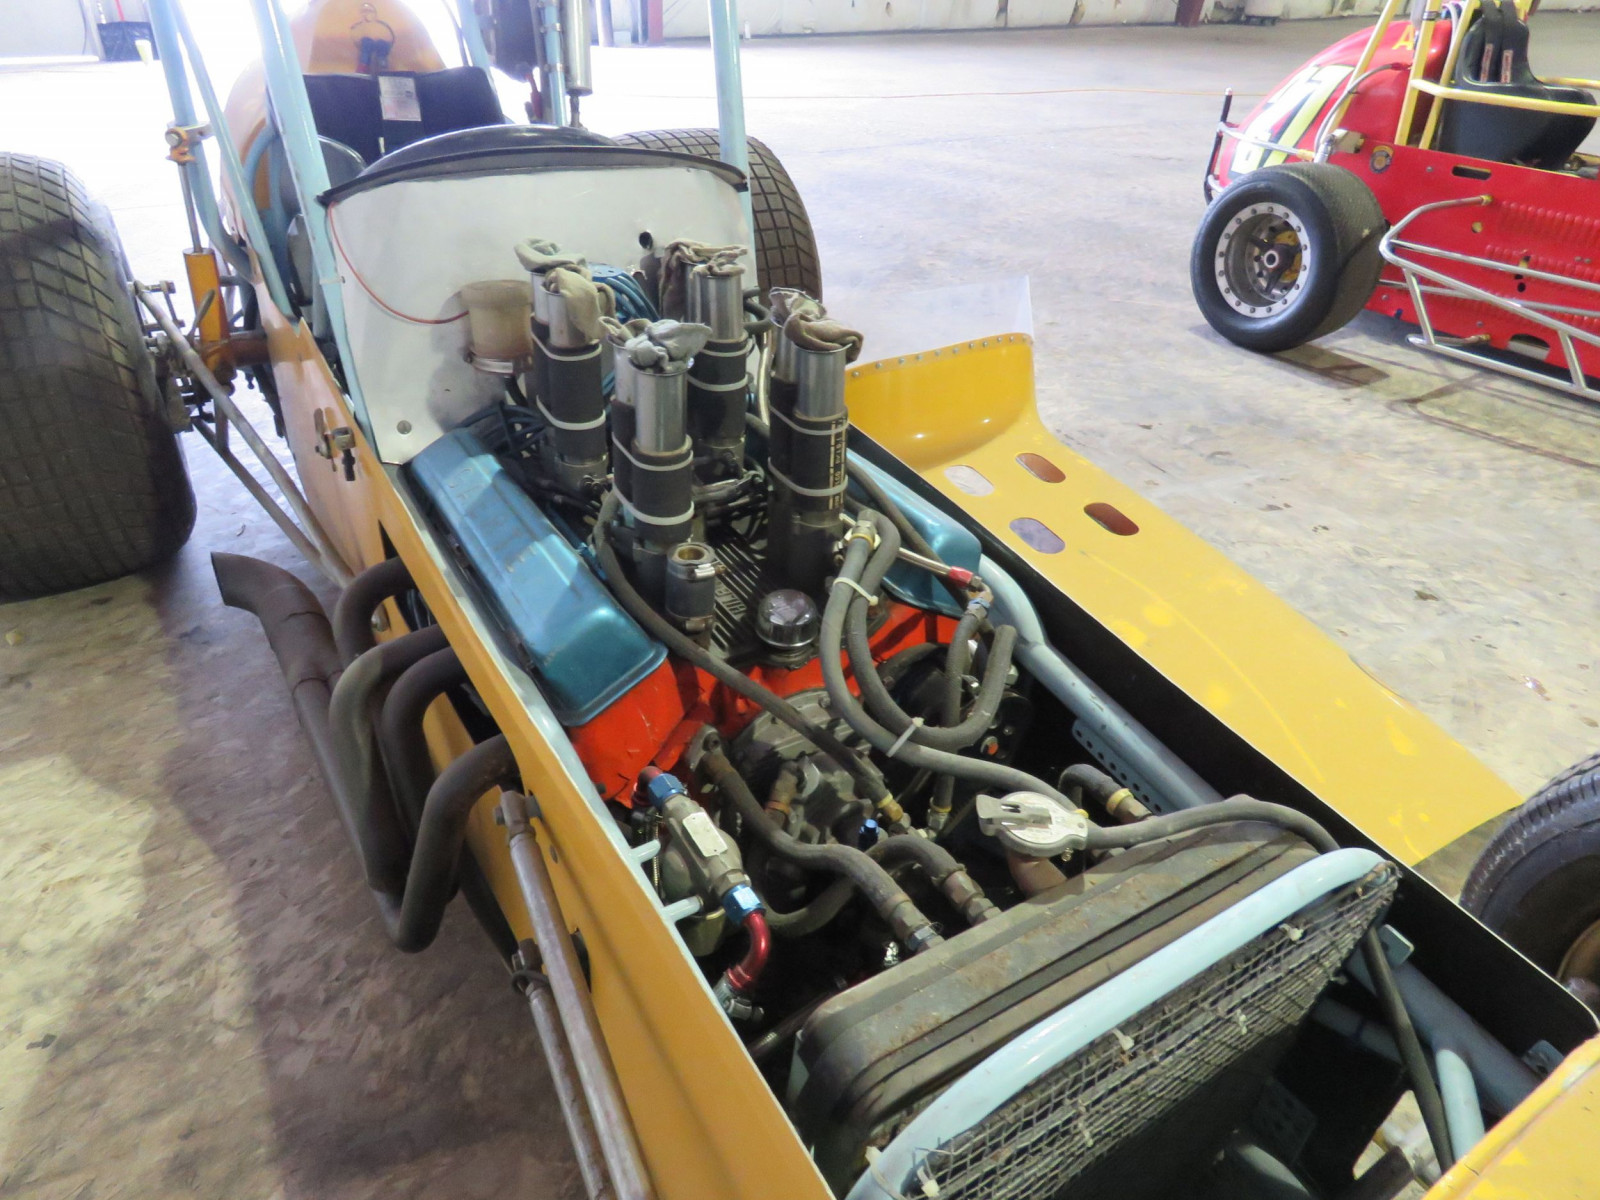 1972 fuel Injected Midget Race Car - Image 12